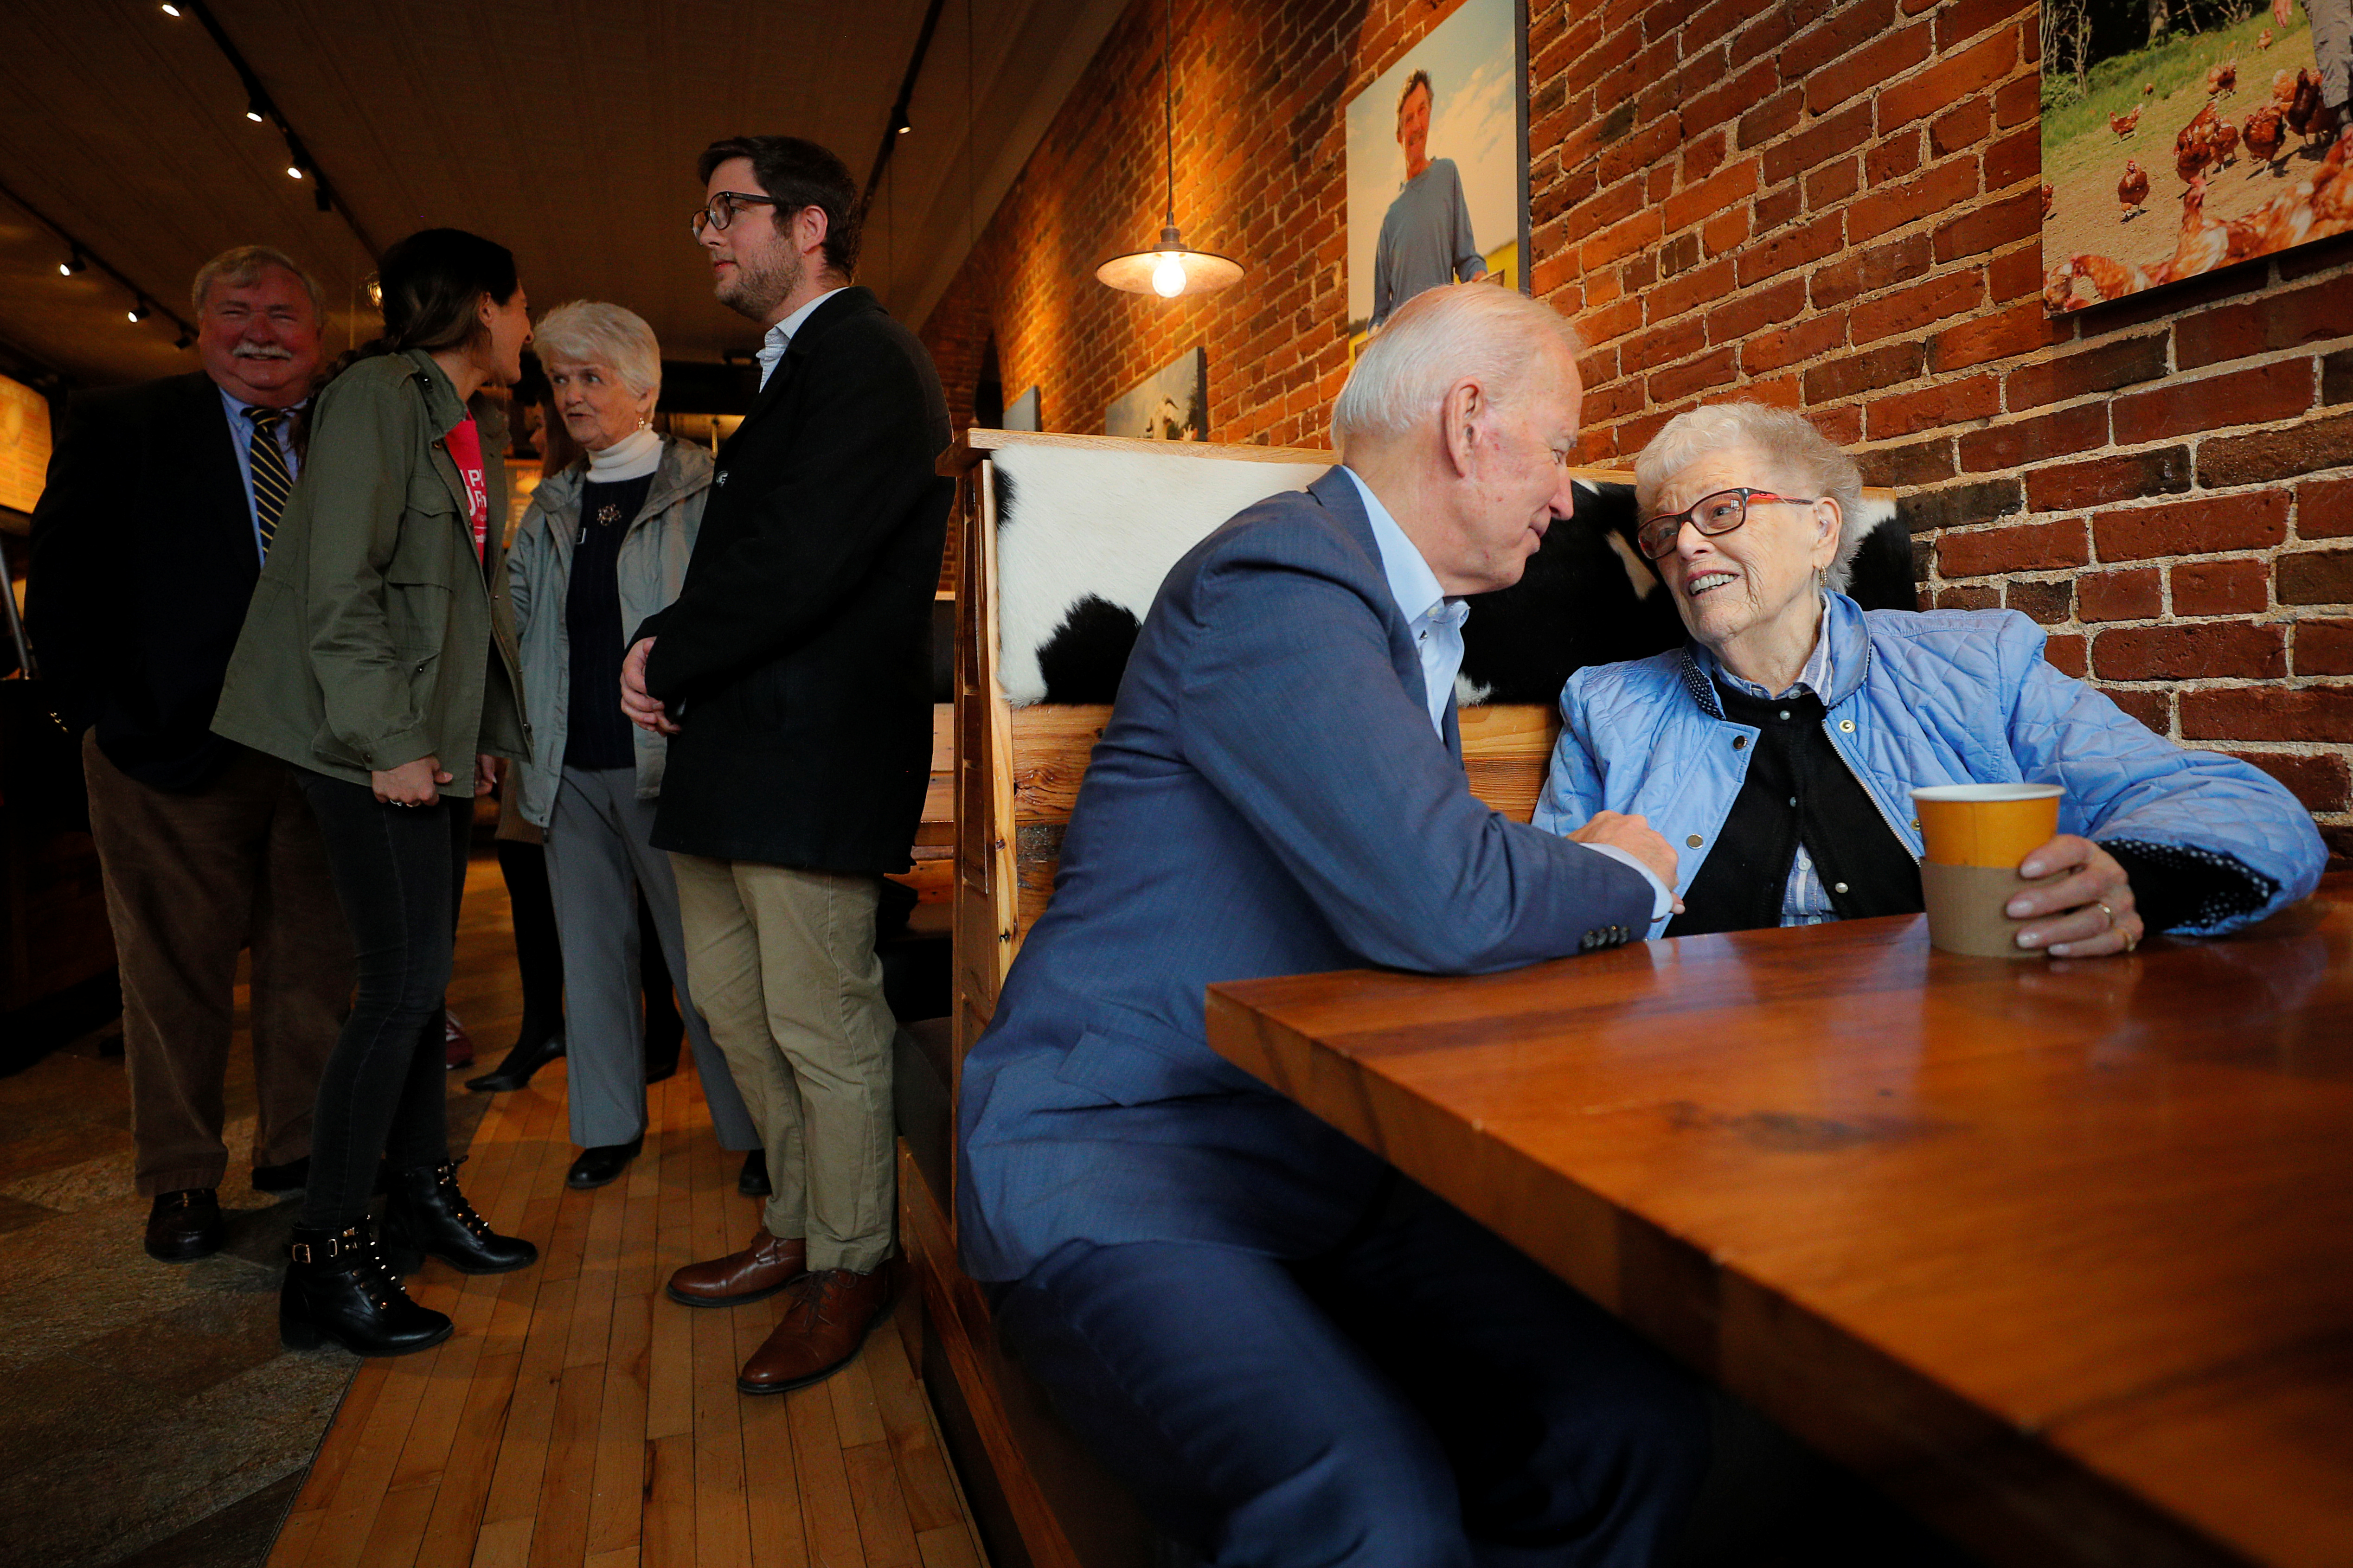 Democratic 2020 U.S. presidential candidate and former Vice President Joe Biden talks to Rita Marion during a campaign stop at The Works in Concord, New Hampshire, U.S., May 14, 2019. REUTERS/Brian Snyder